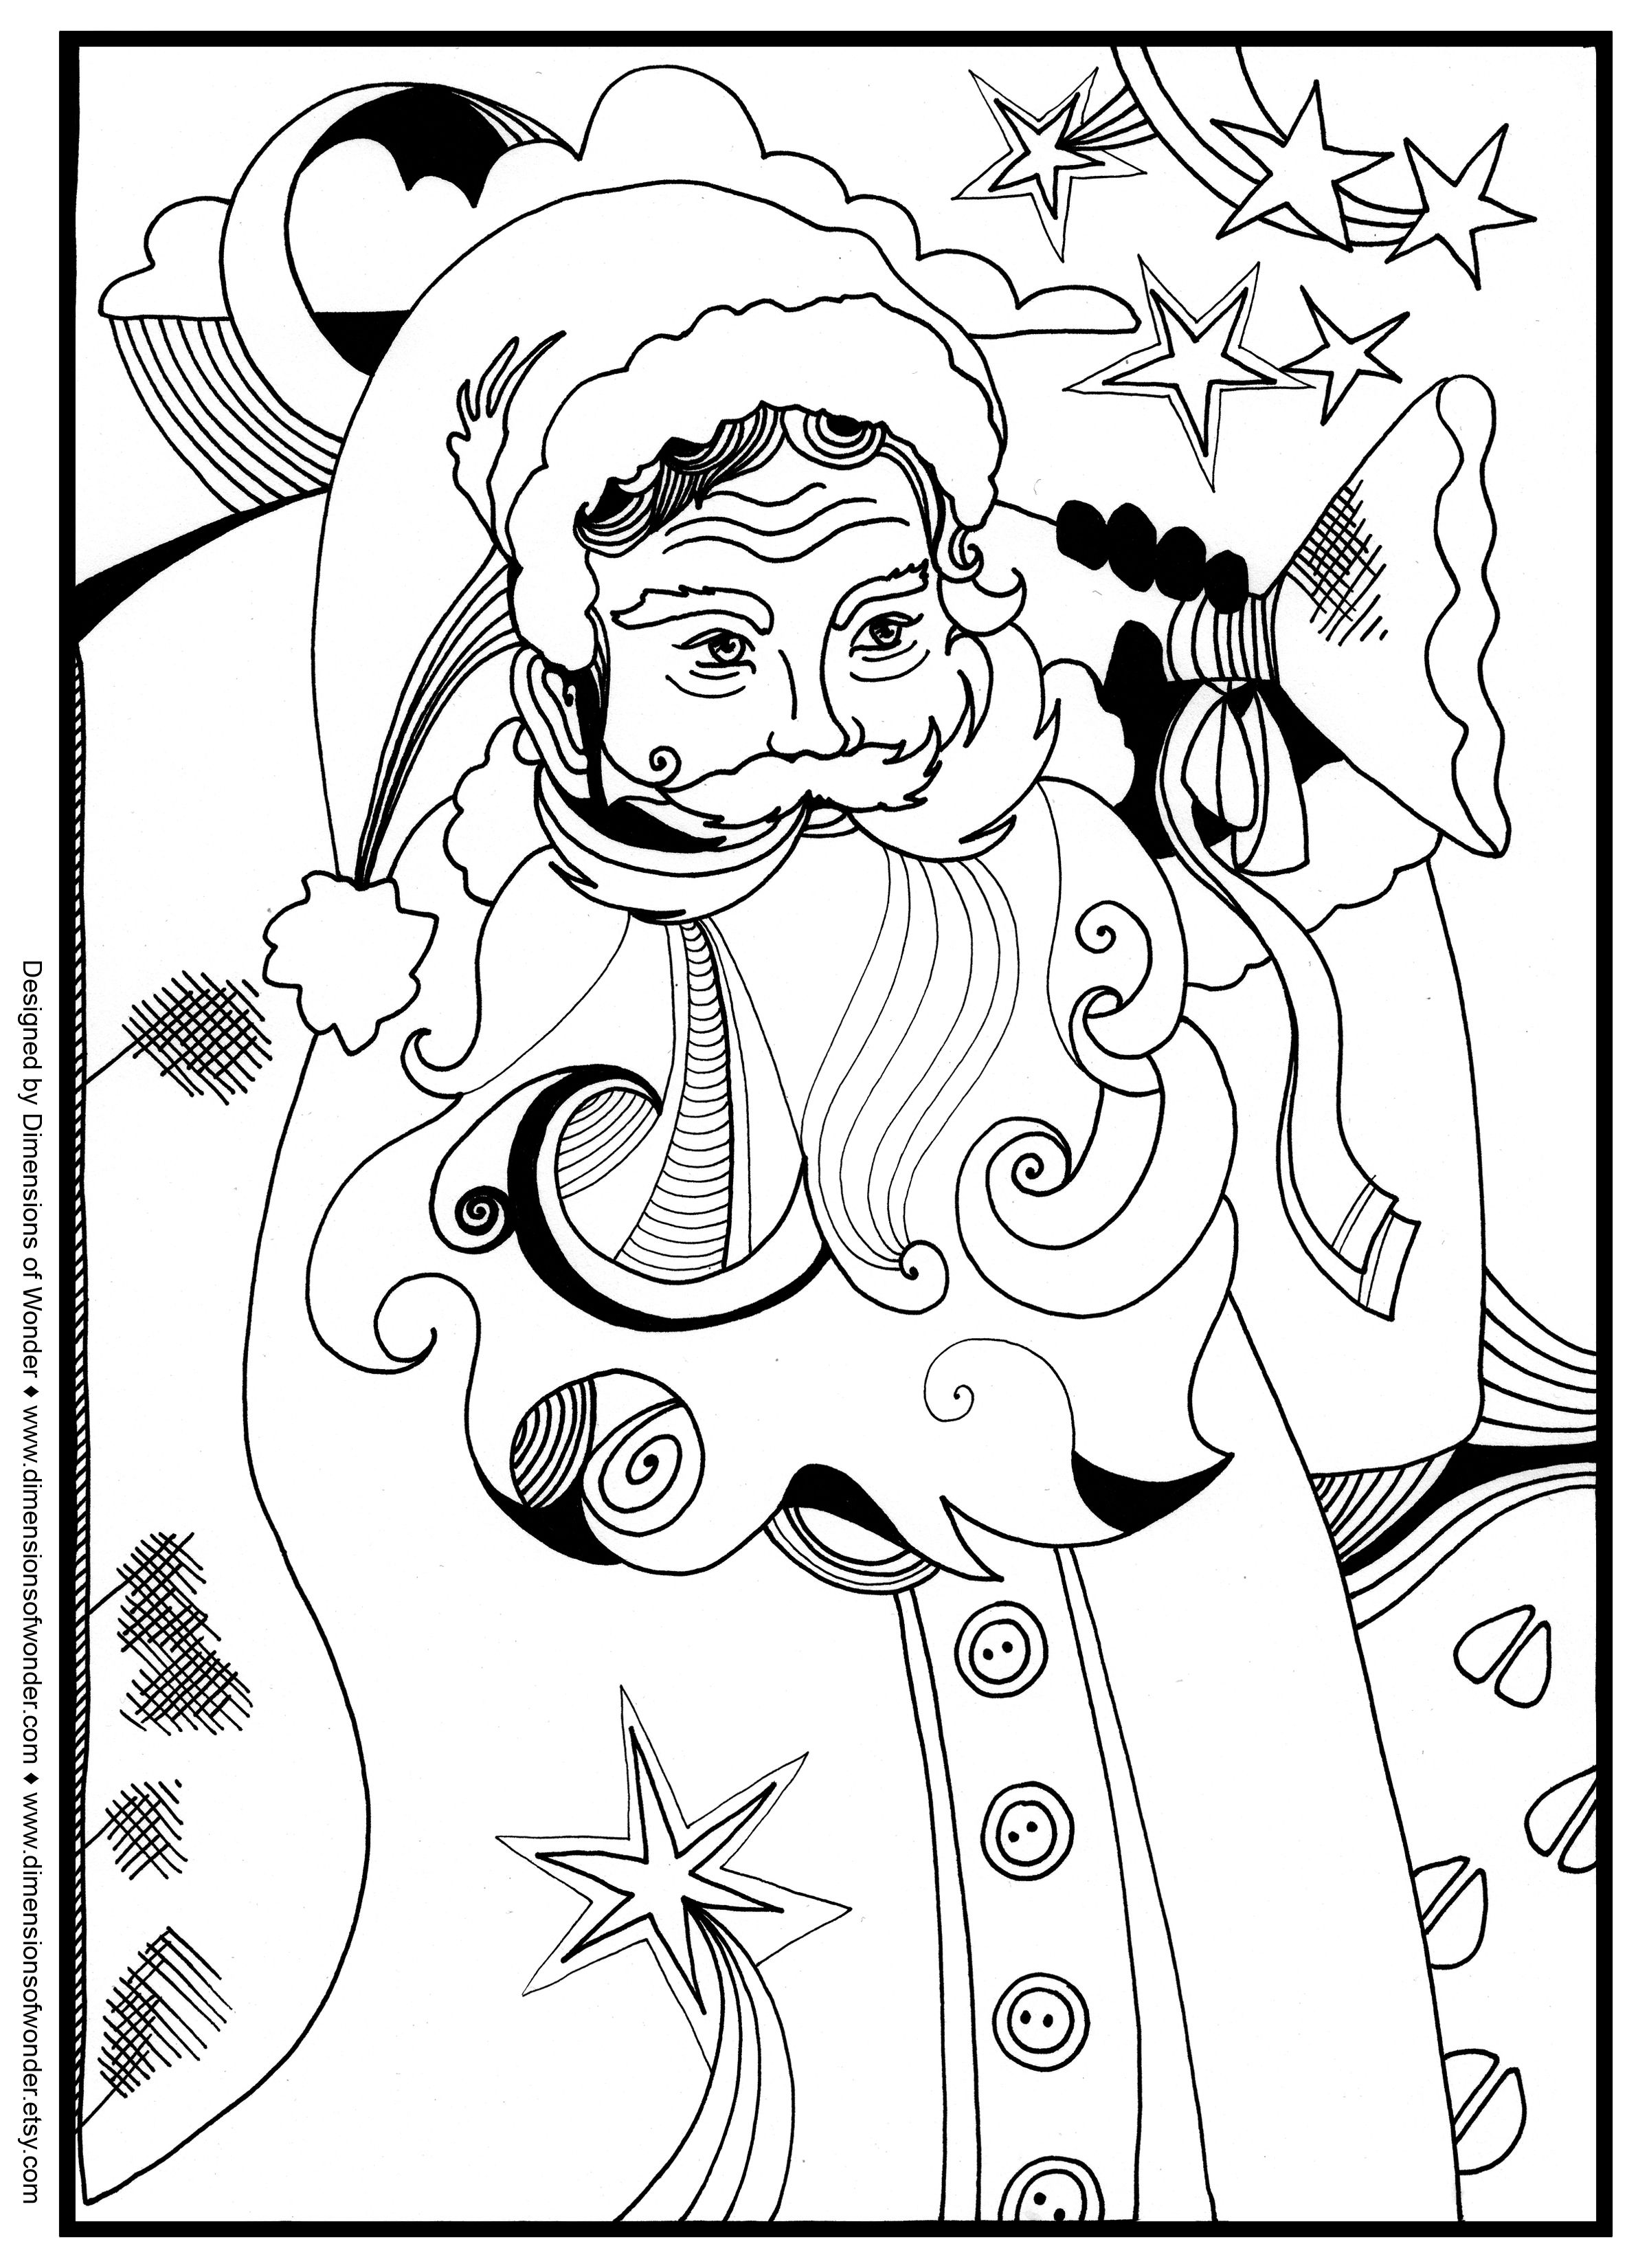 Santa Free Coloring Pages With Christmas Around The World Kidsfreecoloring Net